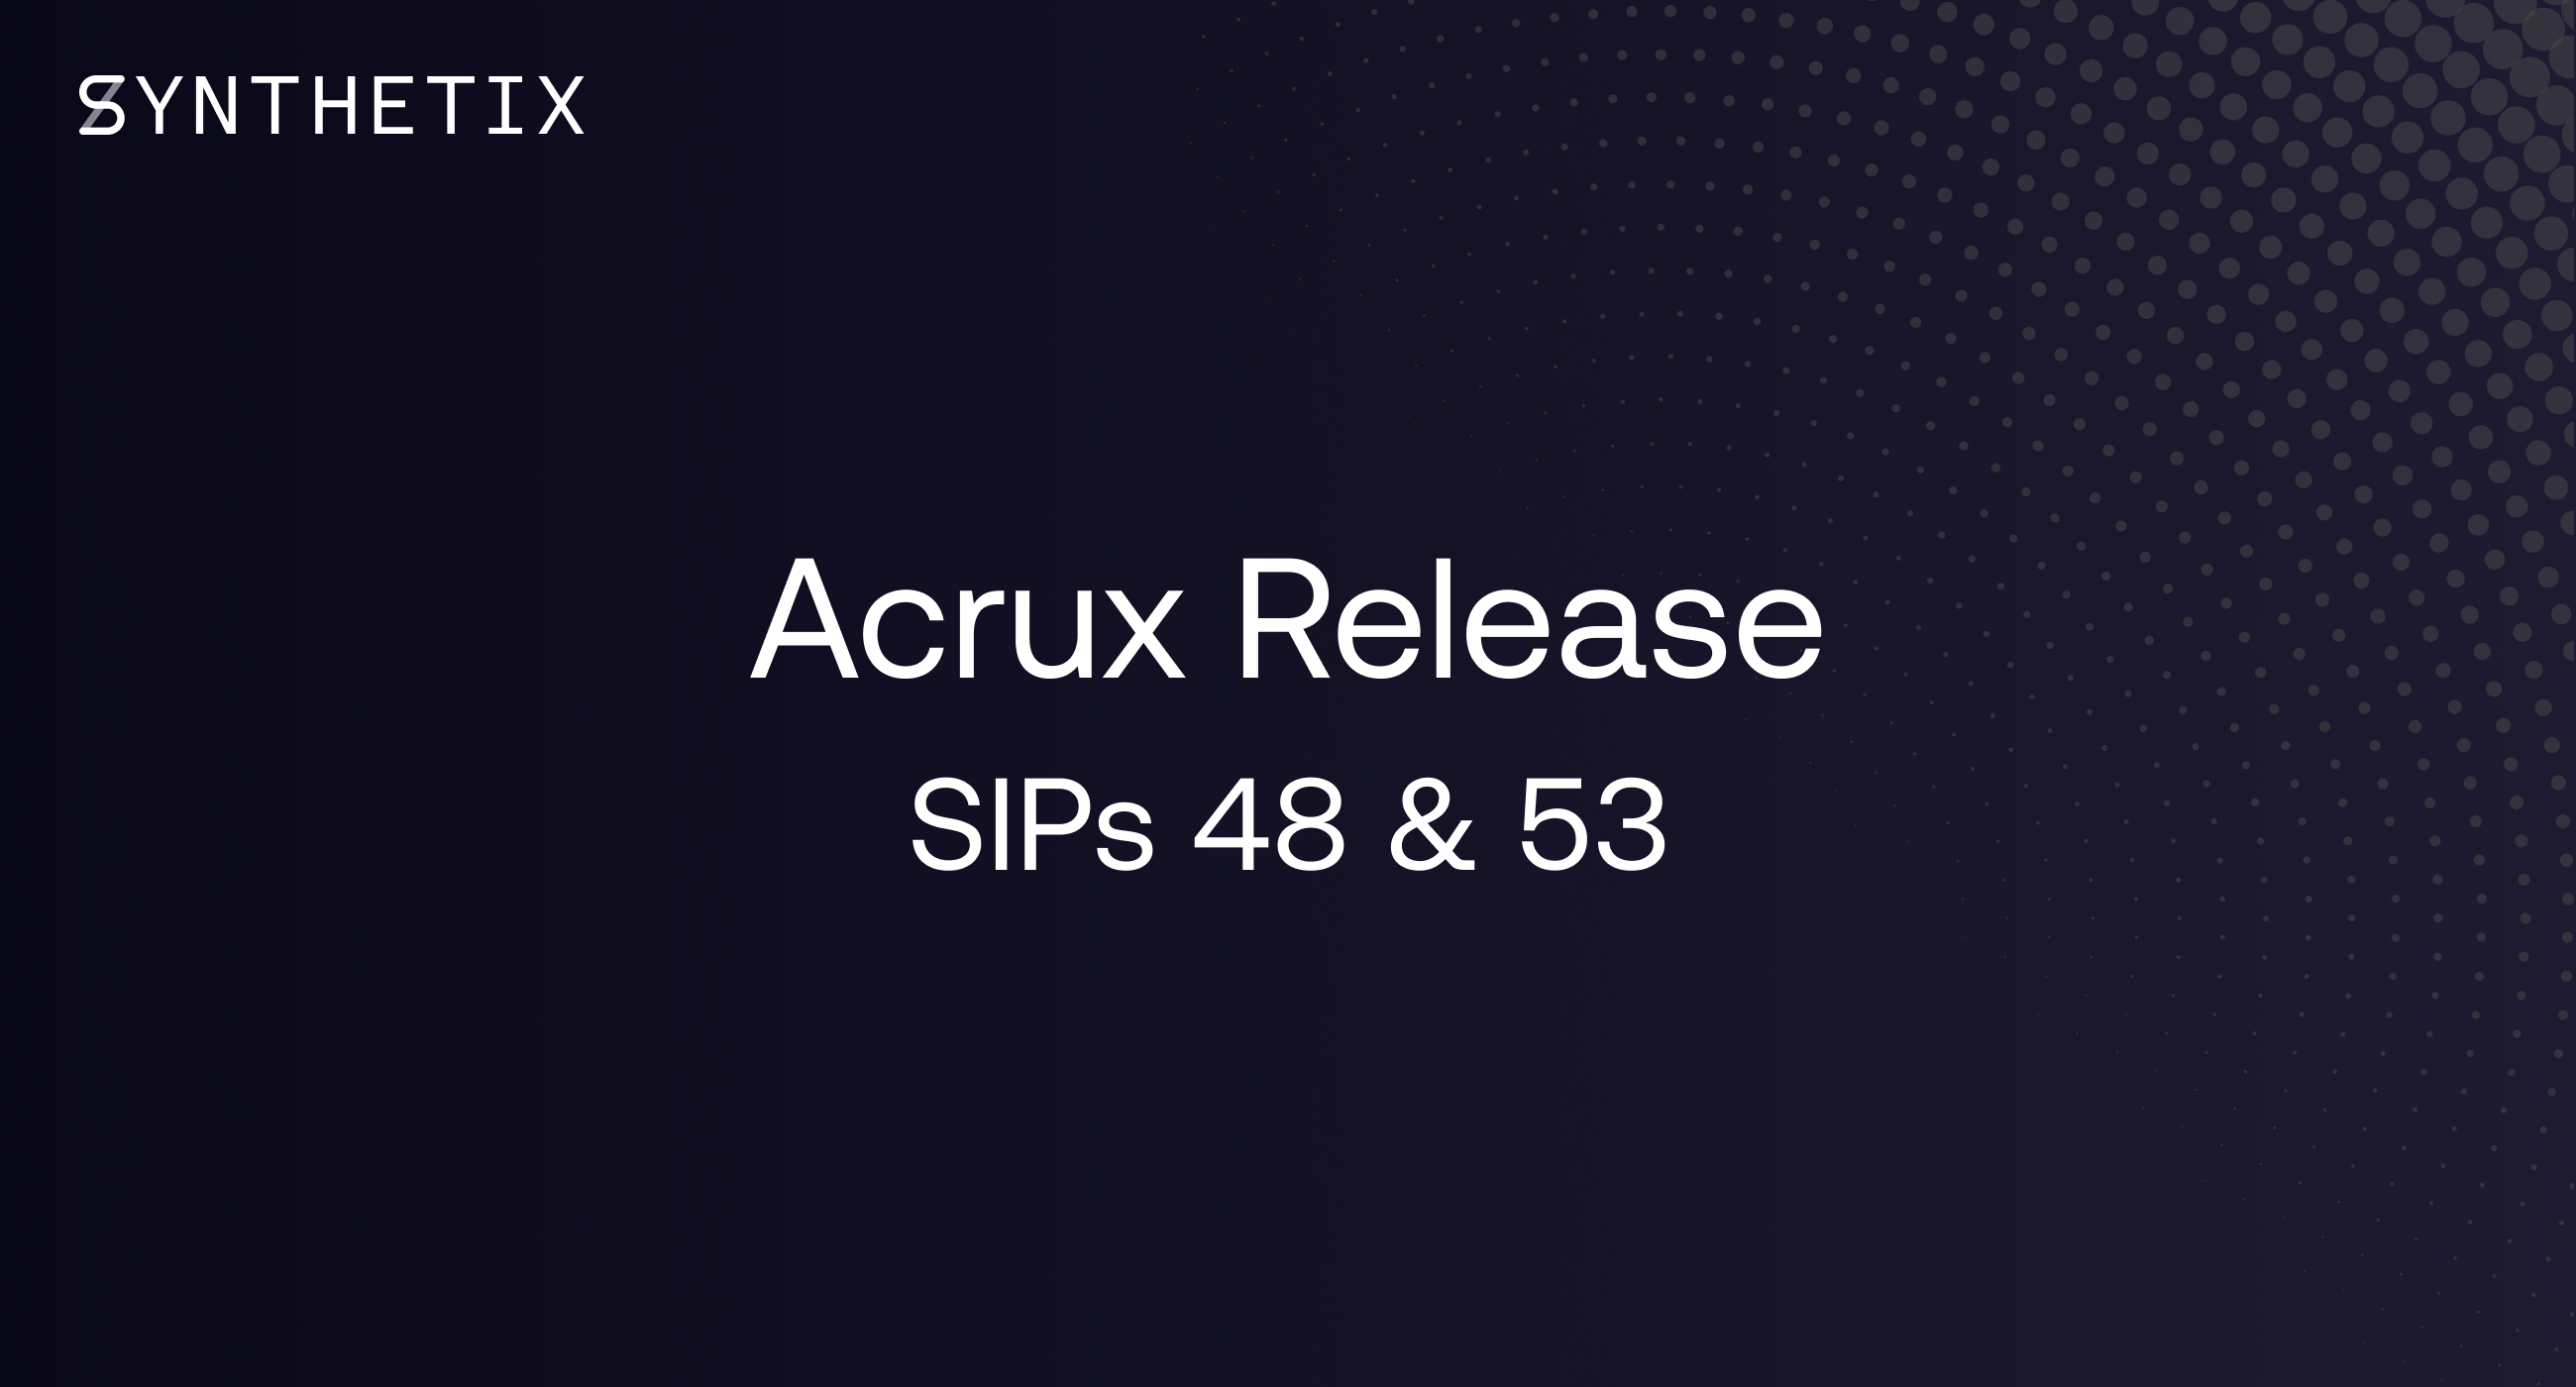 The Acrux release